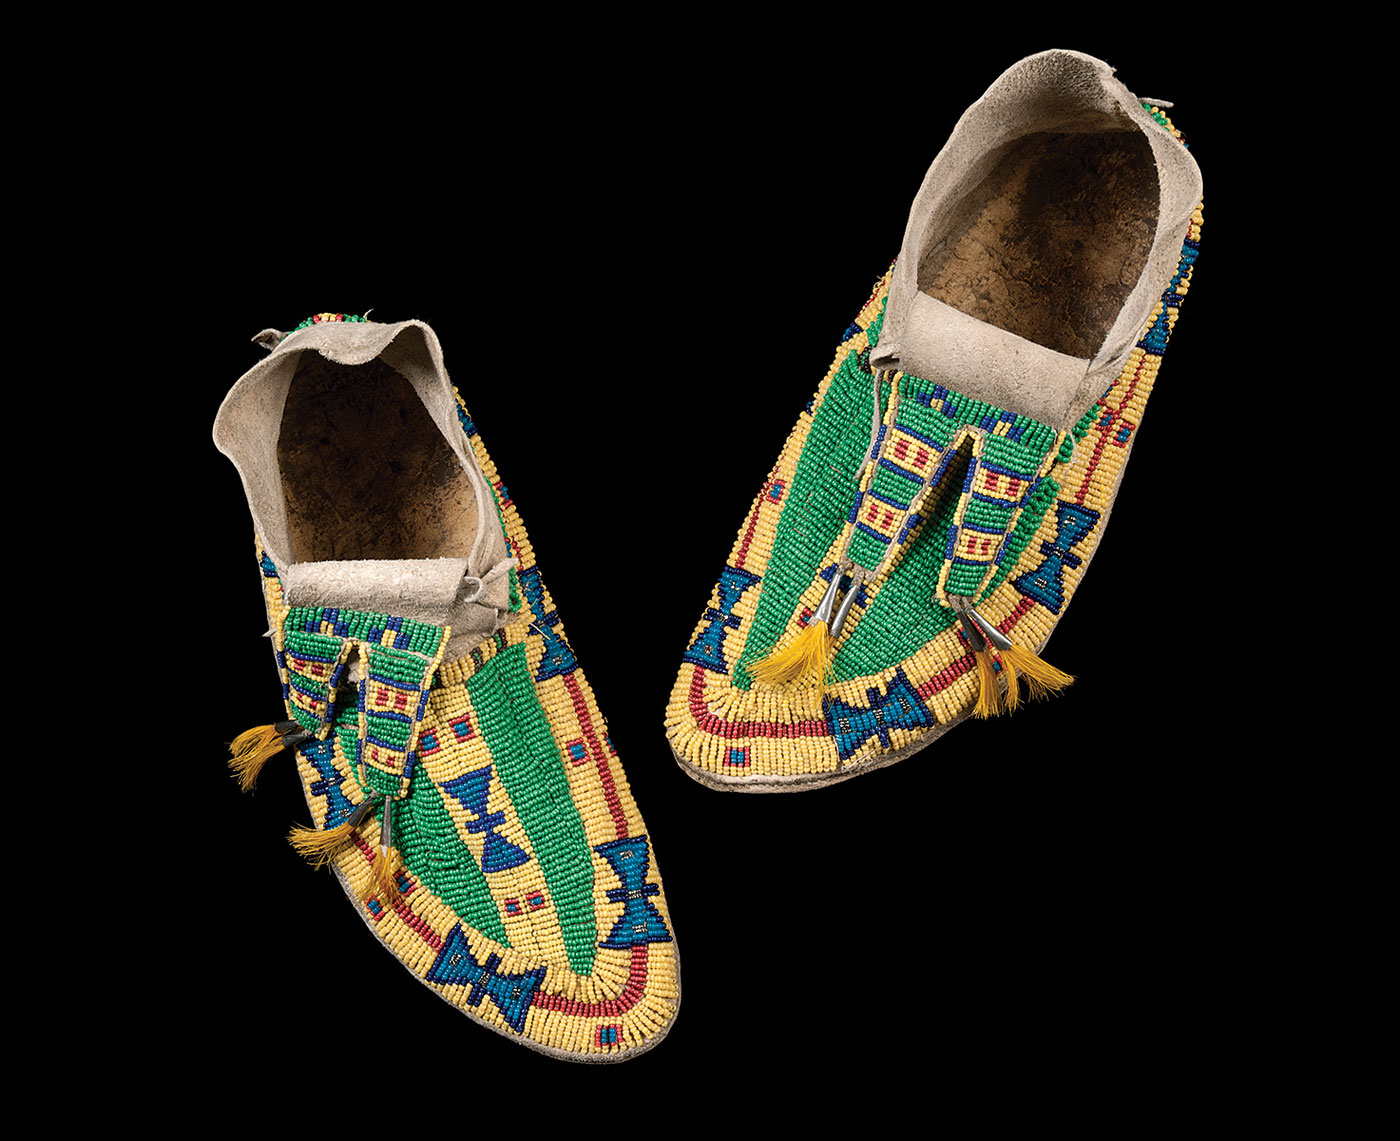 Beadwork Adorns the World:  WEDDING MOCCASINS FOR BRIDE'S IN-LAWS, Lakota peoples, North or South Dakota, of tanned hide, glass beads, 26.7 centimeters, circa 1930.  Photograph by Blair Clark.